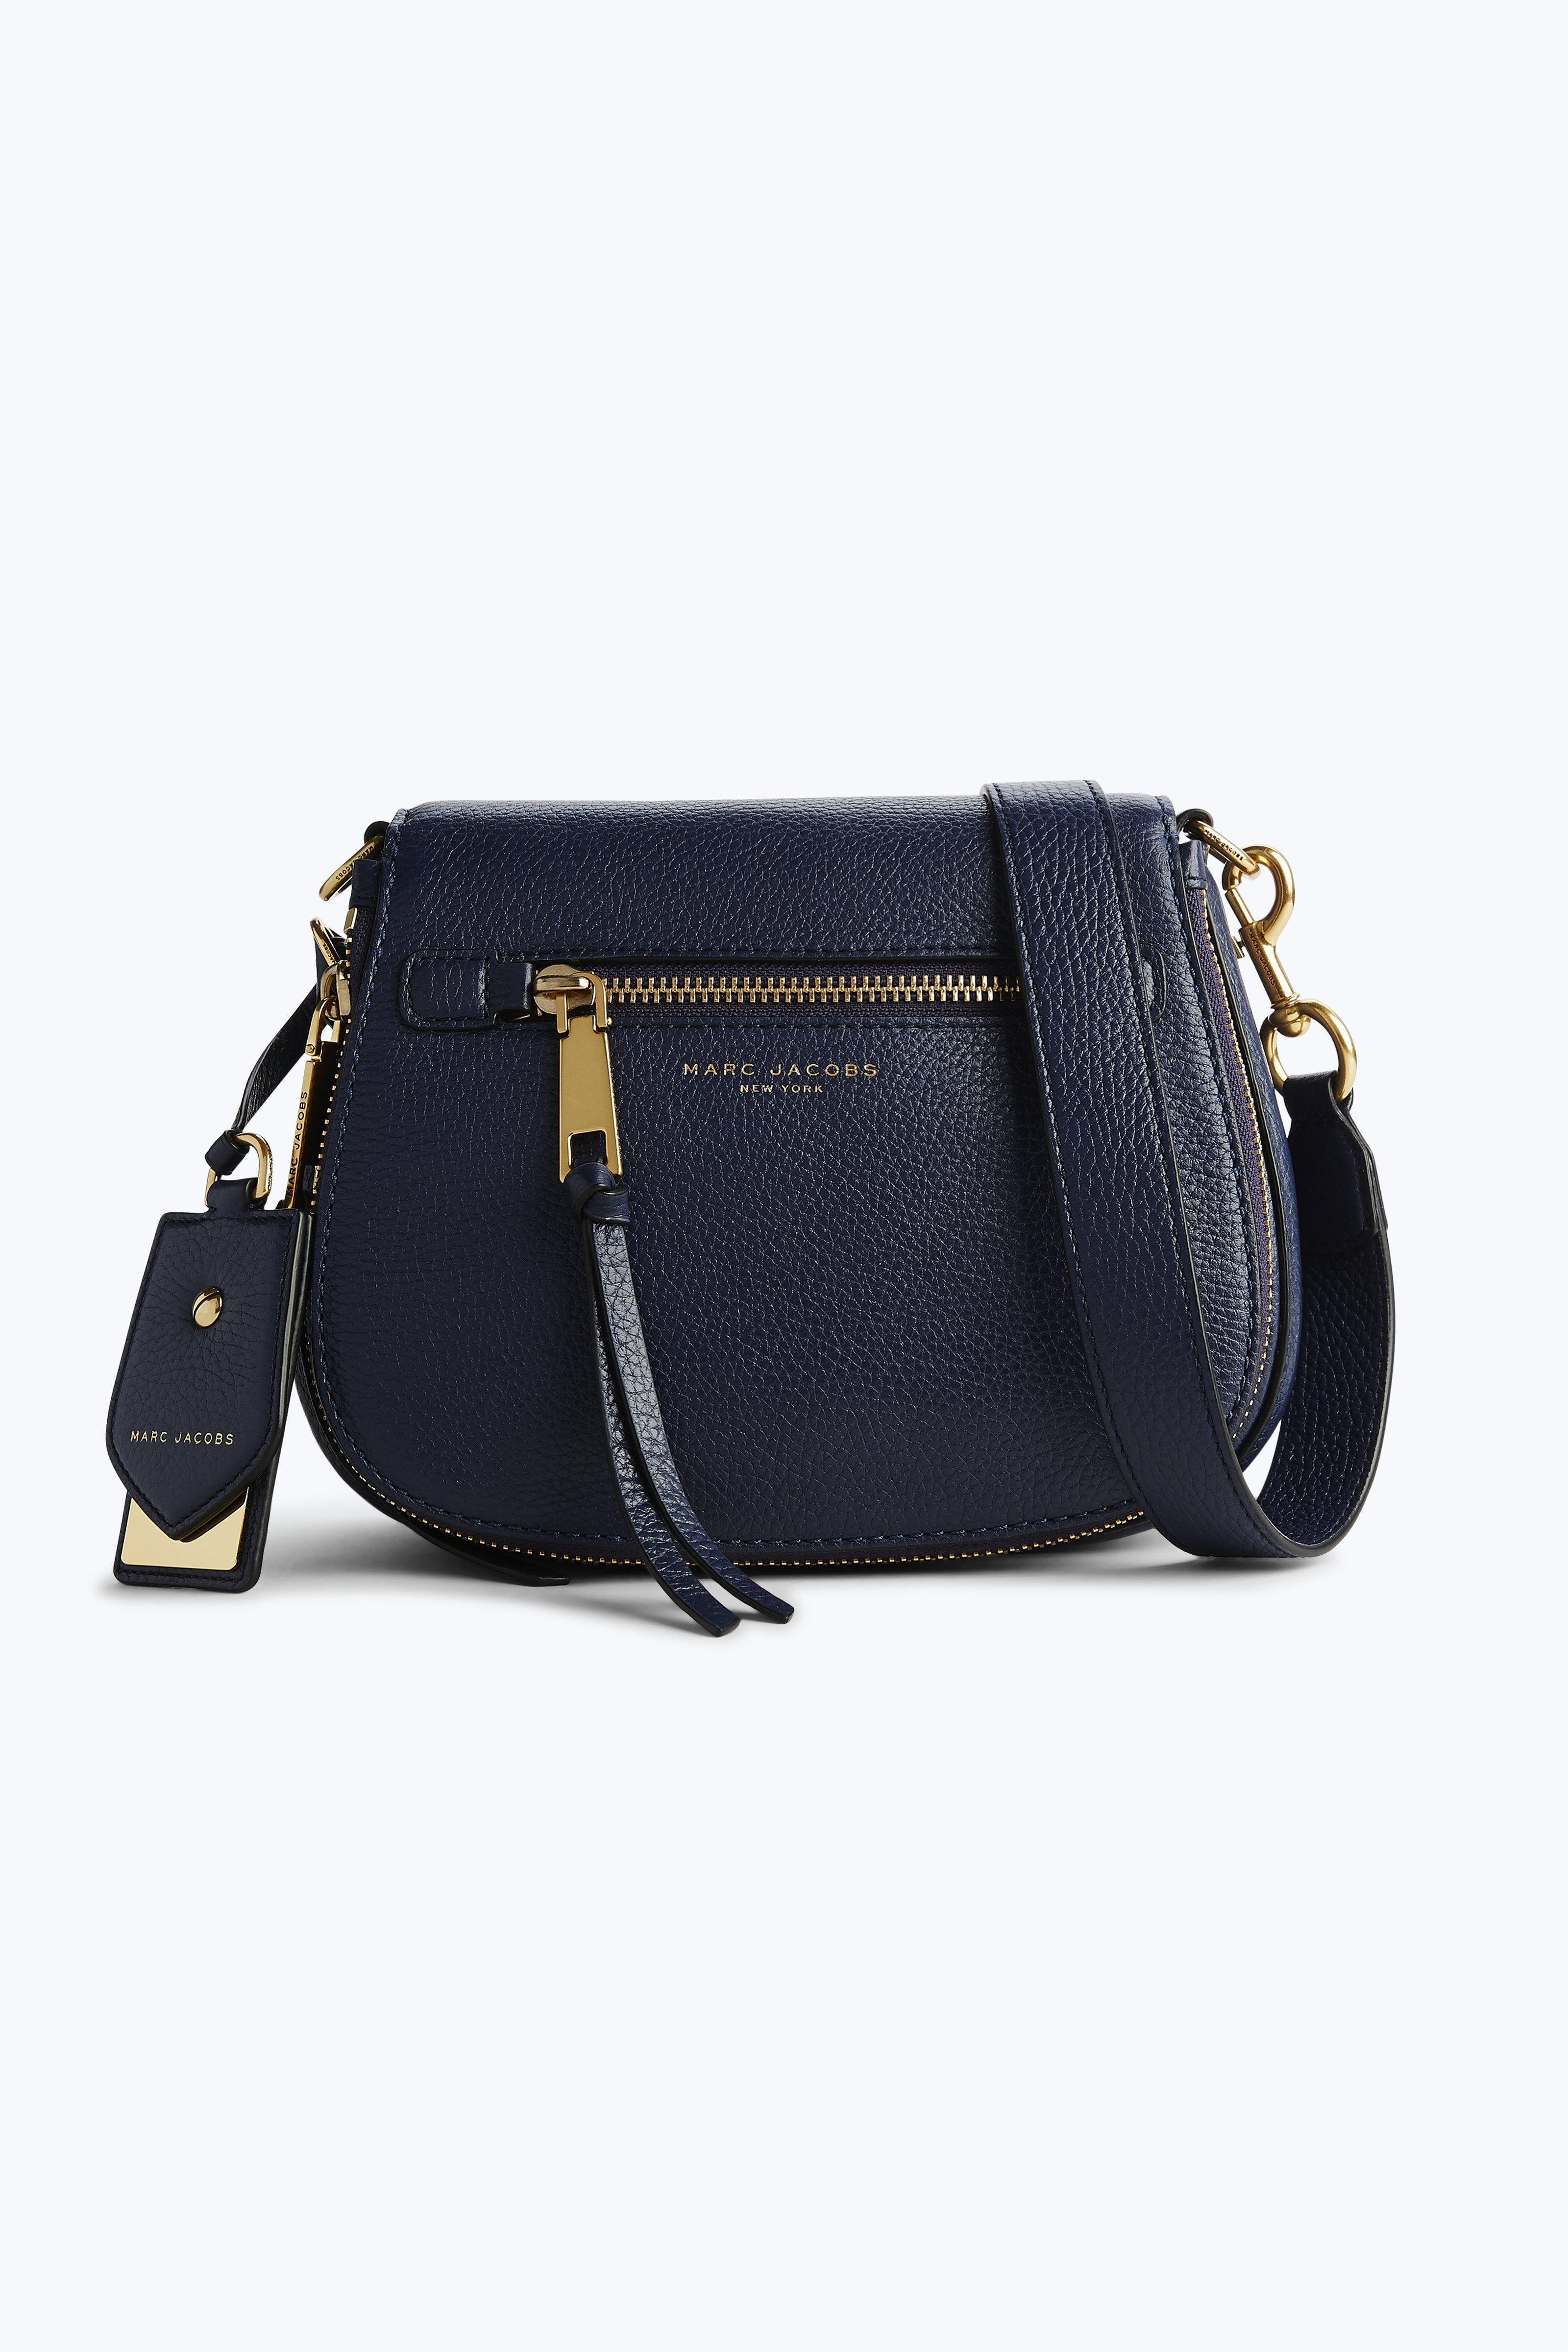 Marc Jacobs Recruit Small Nomad Saddle Bag In Midnight Blue